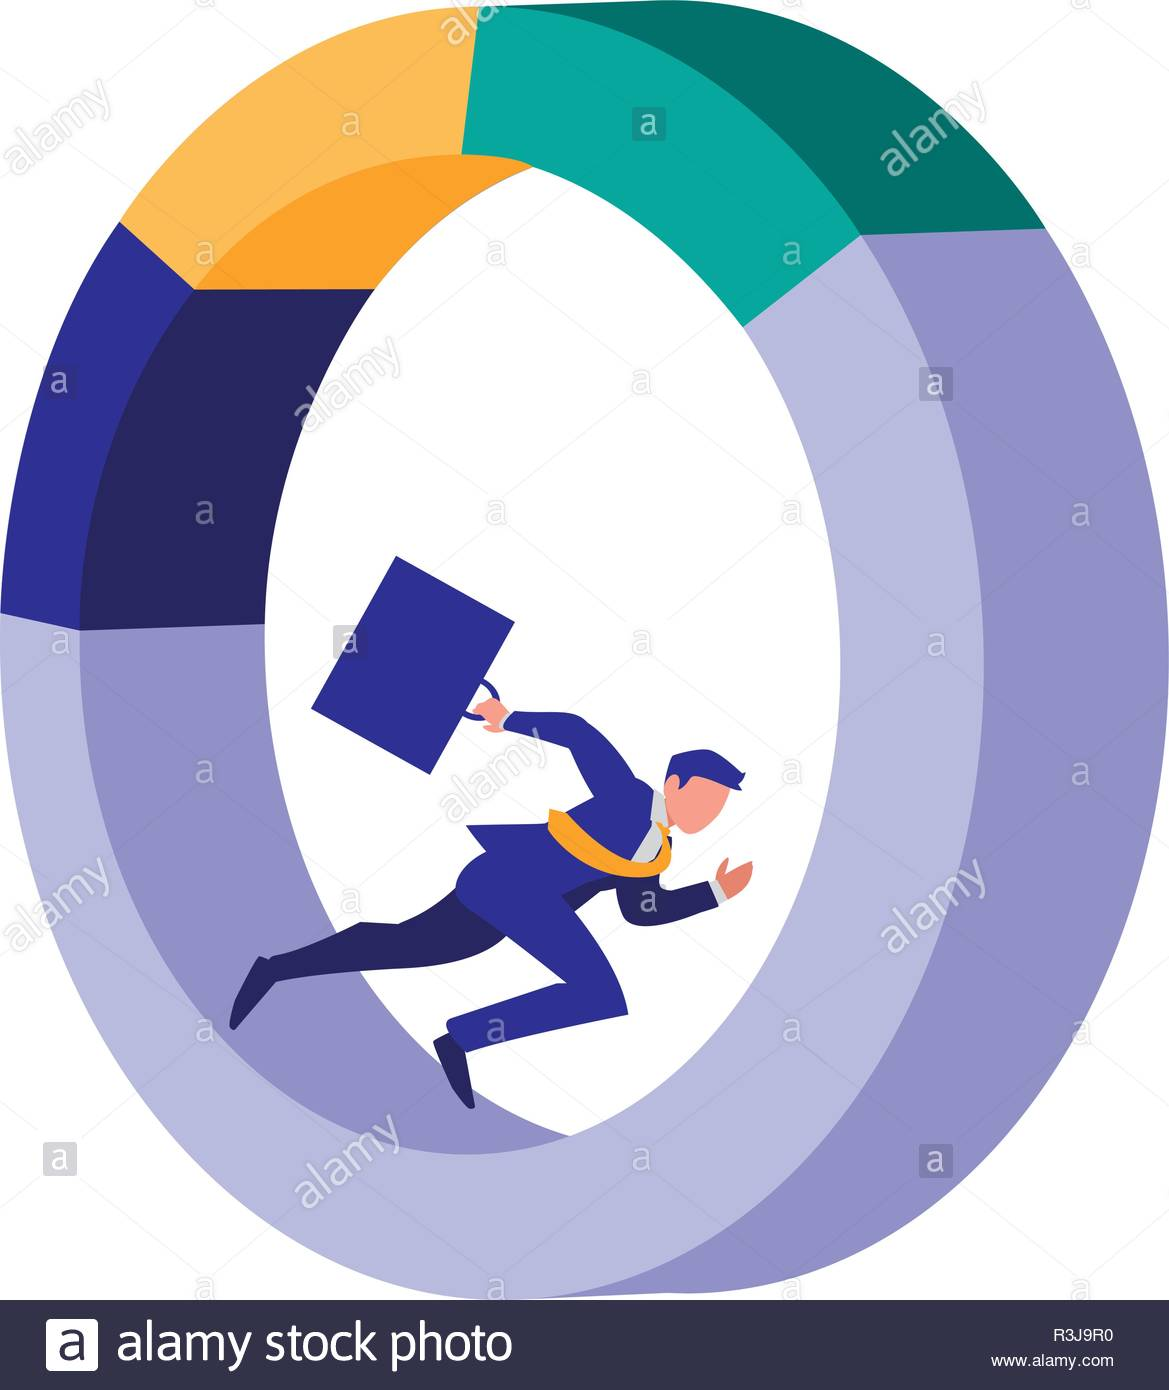 Businessman with infographic design, Management corporate occupation and job theme Vector illustration - Stock Image